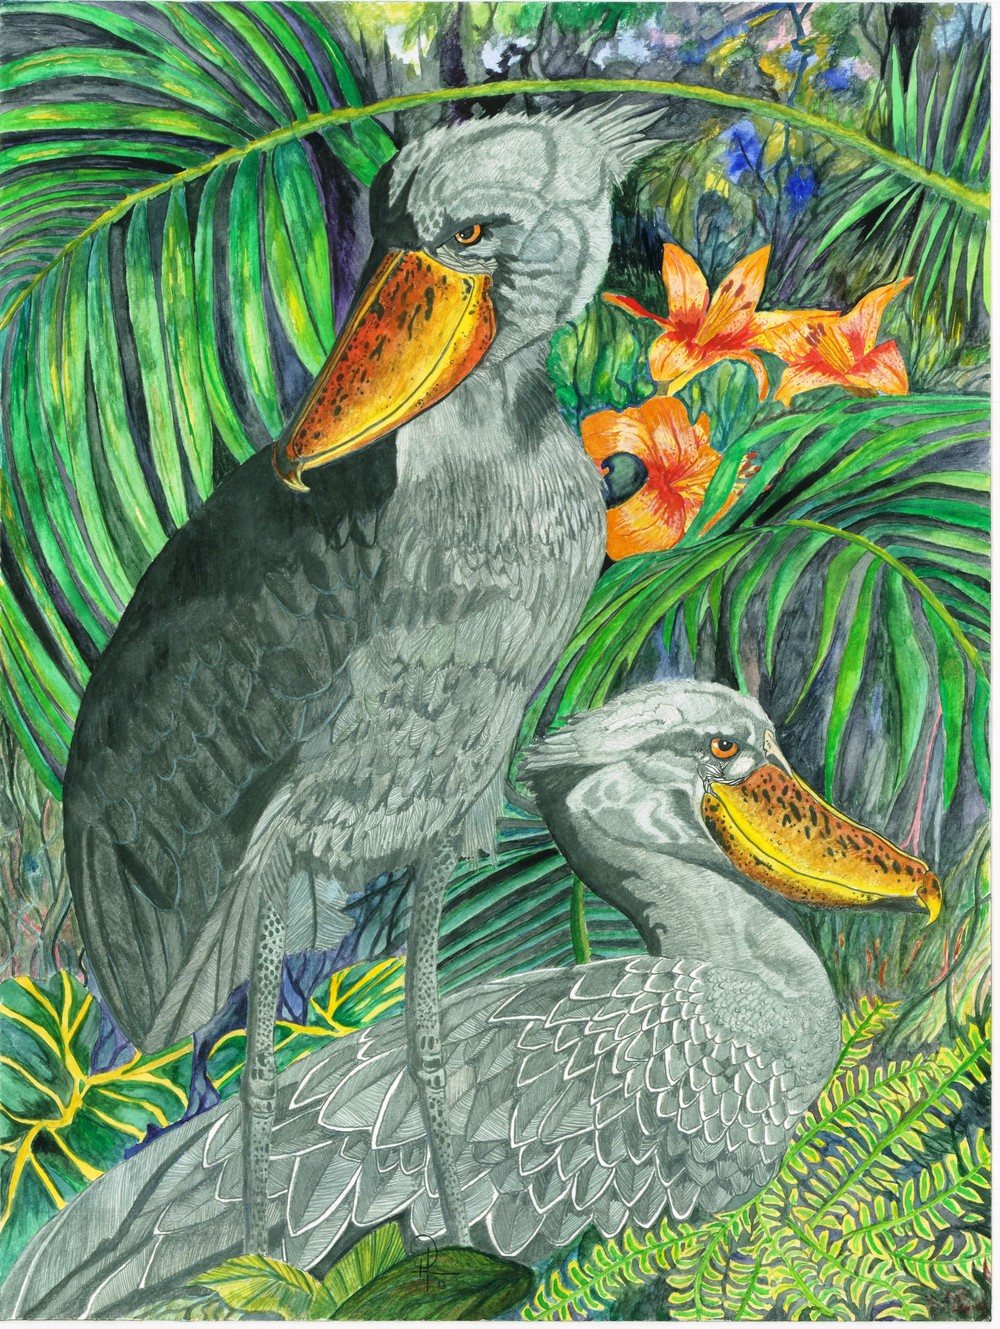 DougHiser_Shoebills_16x20_watercolor.jpg